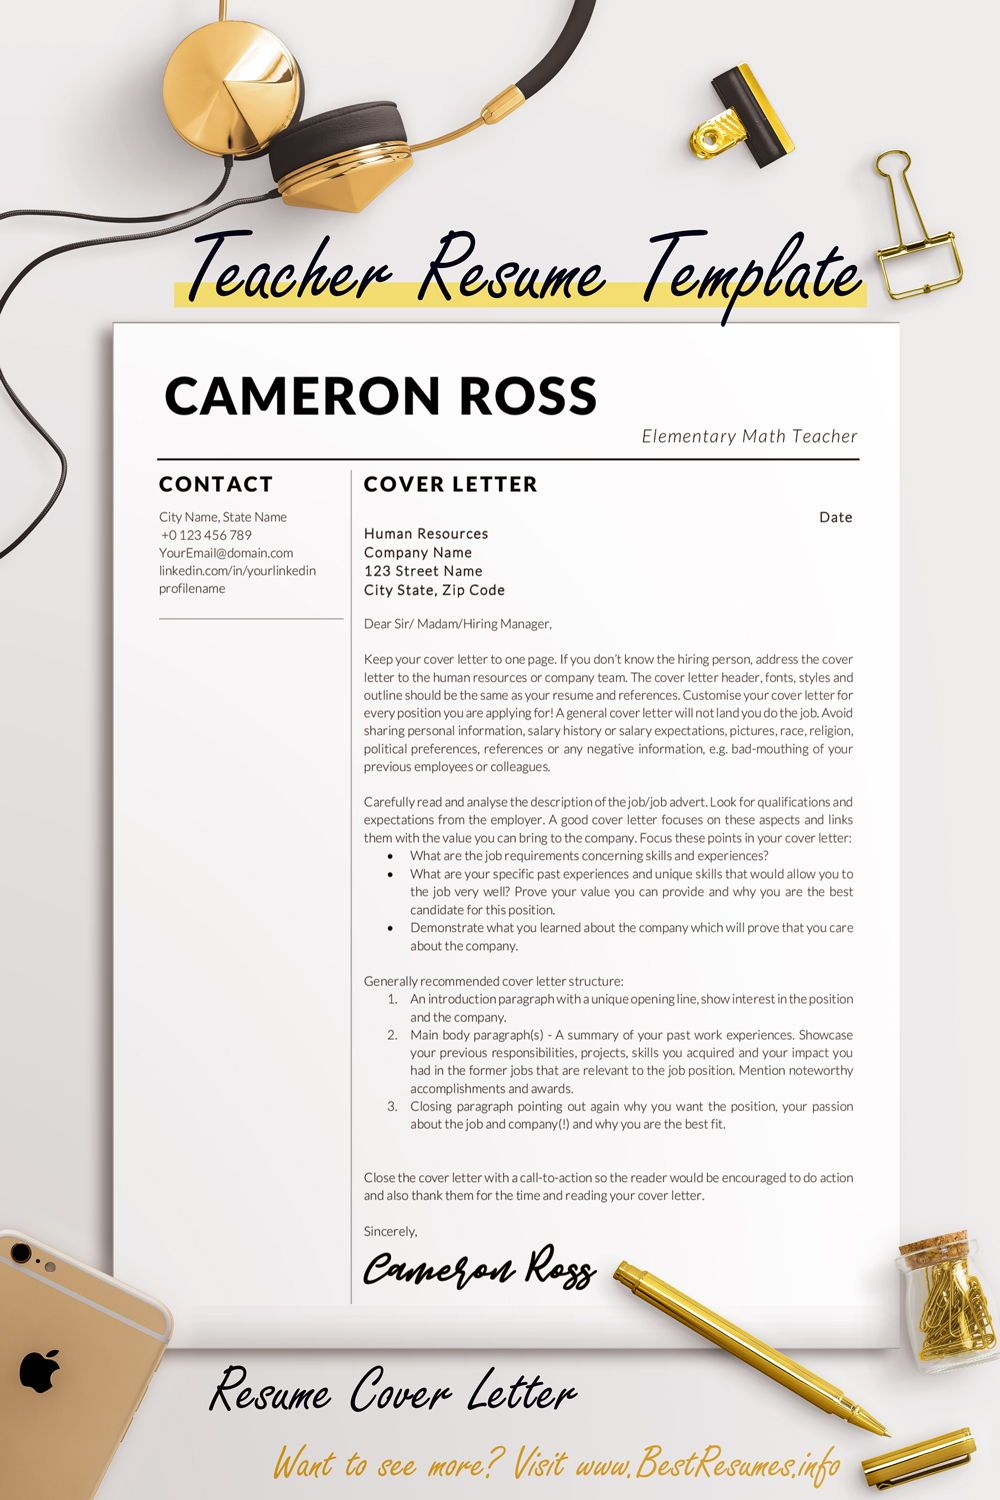 The Proper Business School Resume Template Format Iim Mba Business Resume Template Resume Template Business Resume